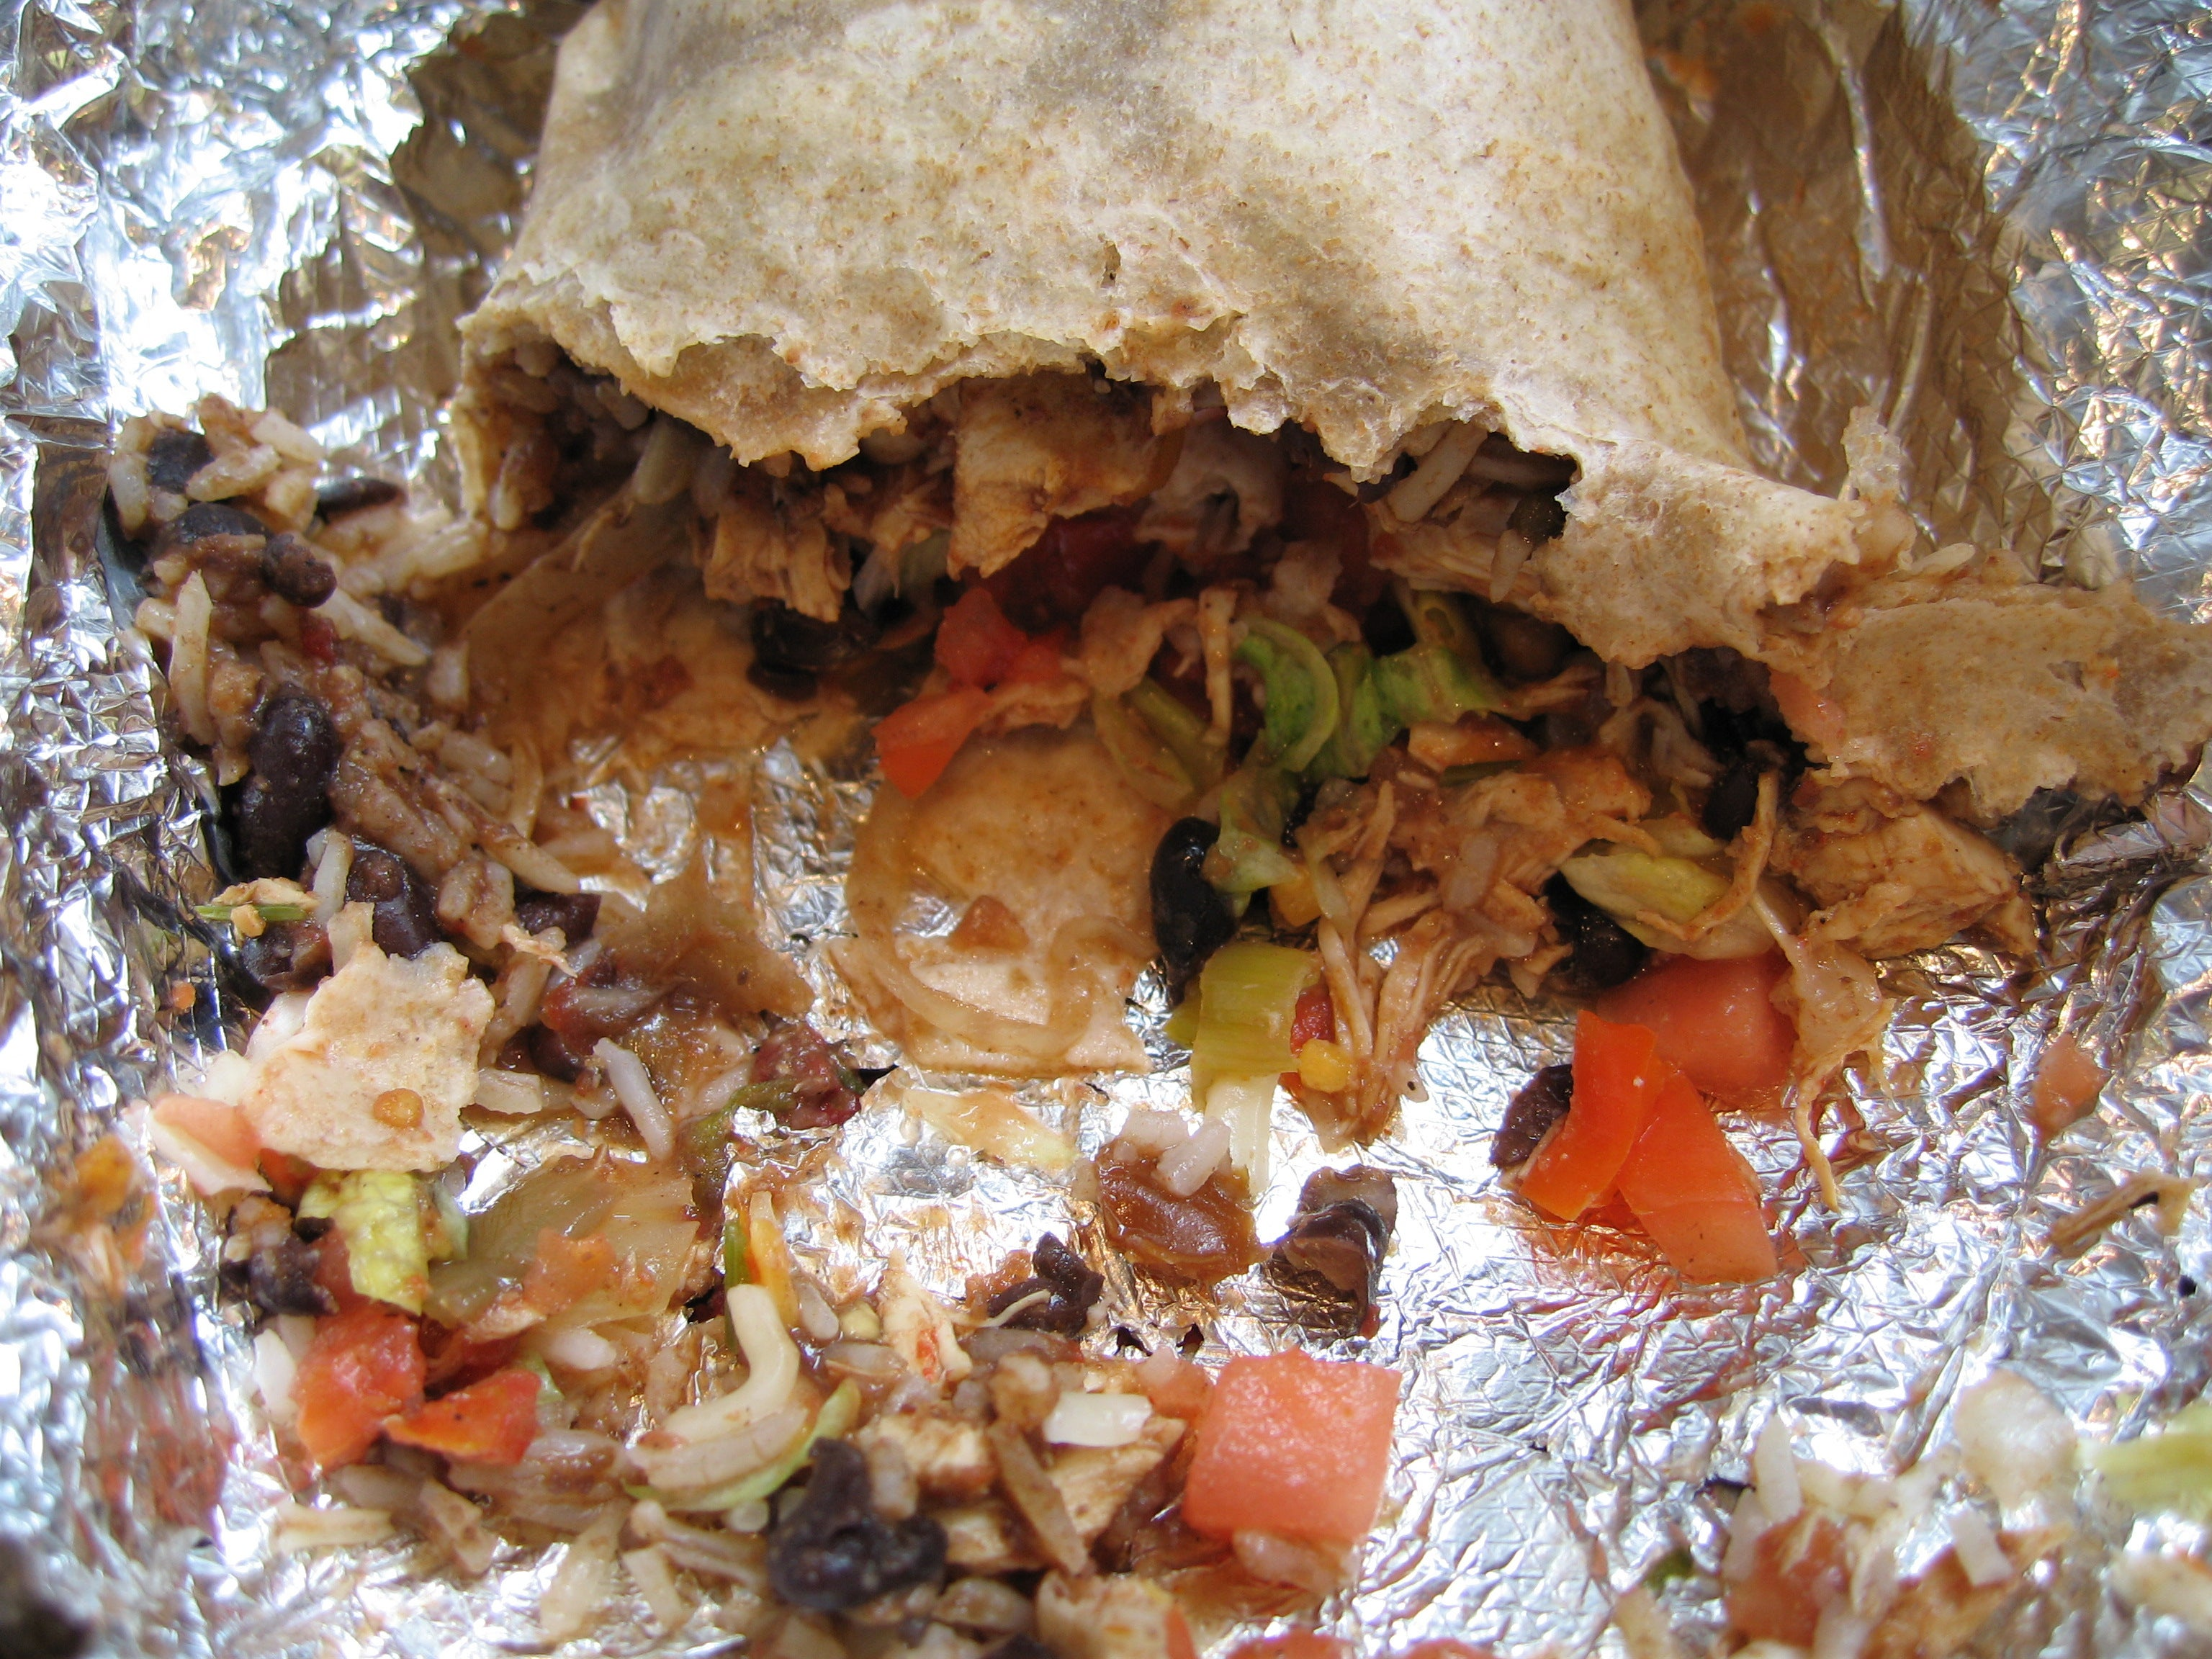 The Good, Bad, and Ugly of Chipotle Rewards   The Motley Fool